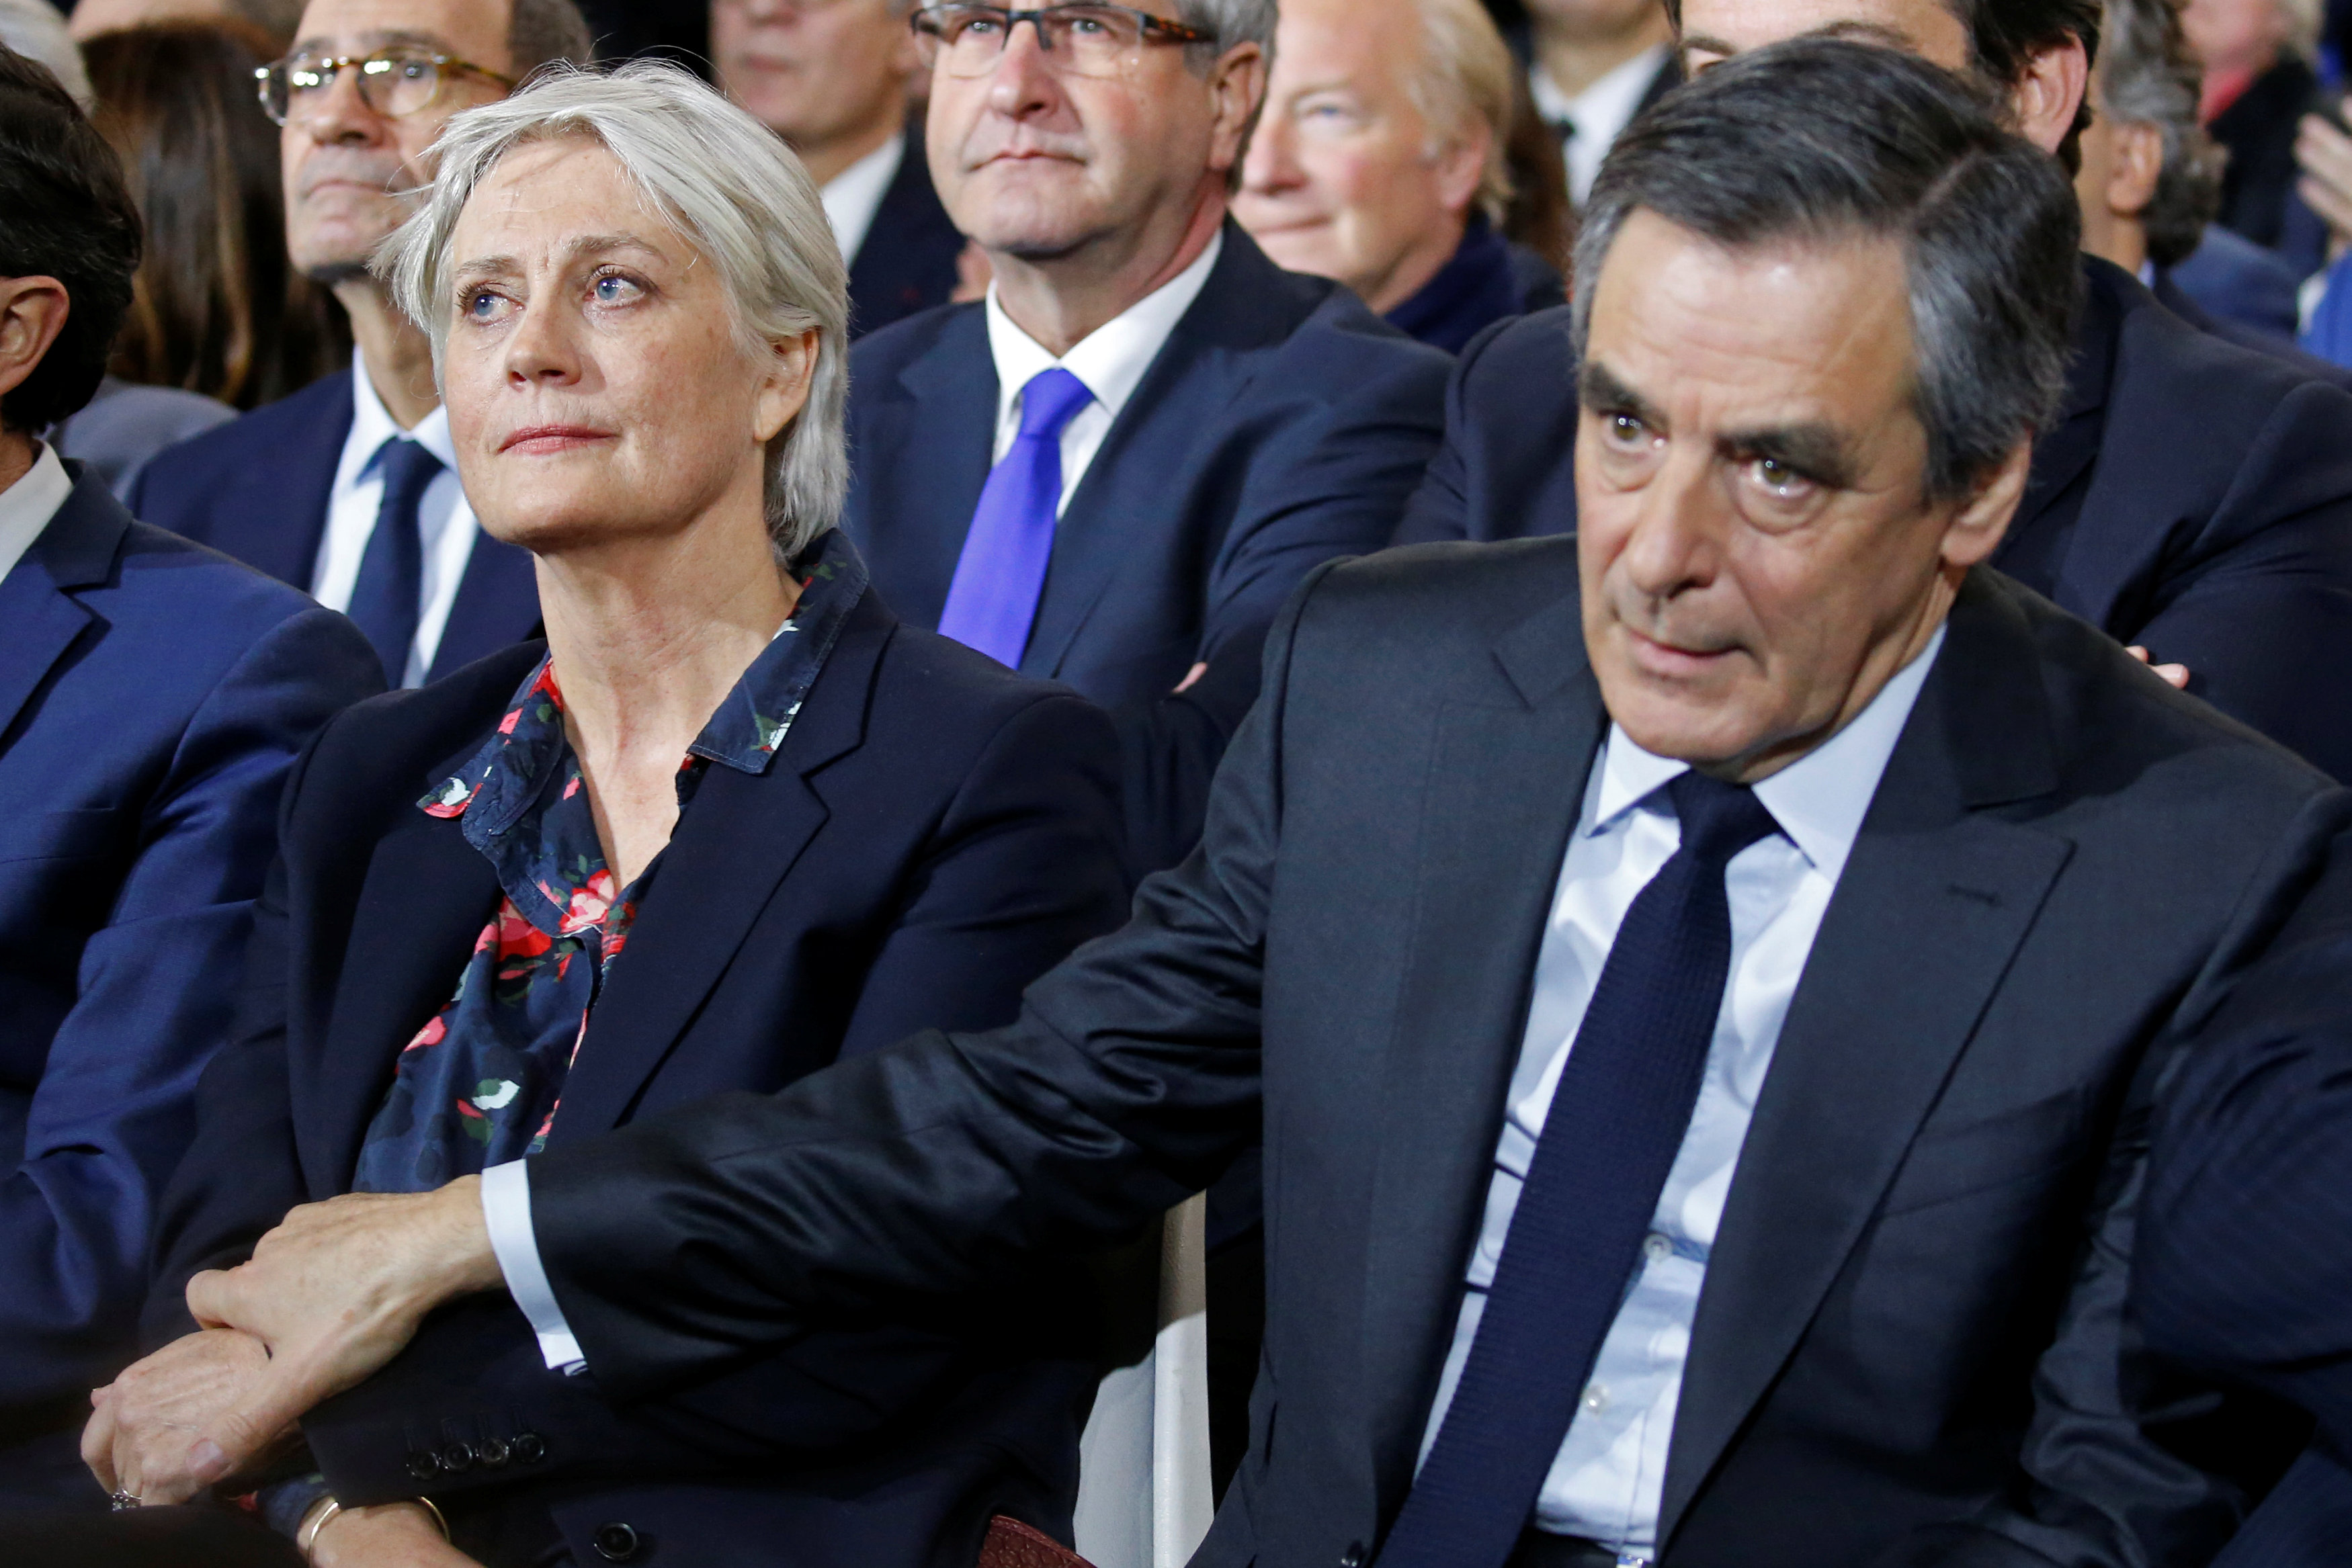 Francois Fillon, member of Les Republicains political party and 2017 presidential candidate of the French centre-right, and his wife Penelope attend a political rally in Paris, France, January 29, 2017. Picture taken January 29, 2017. REUTERS/Pascal Rossignol